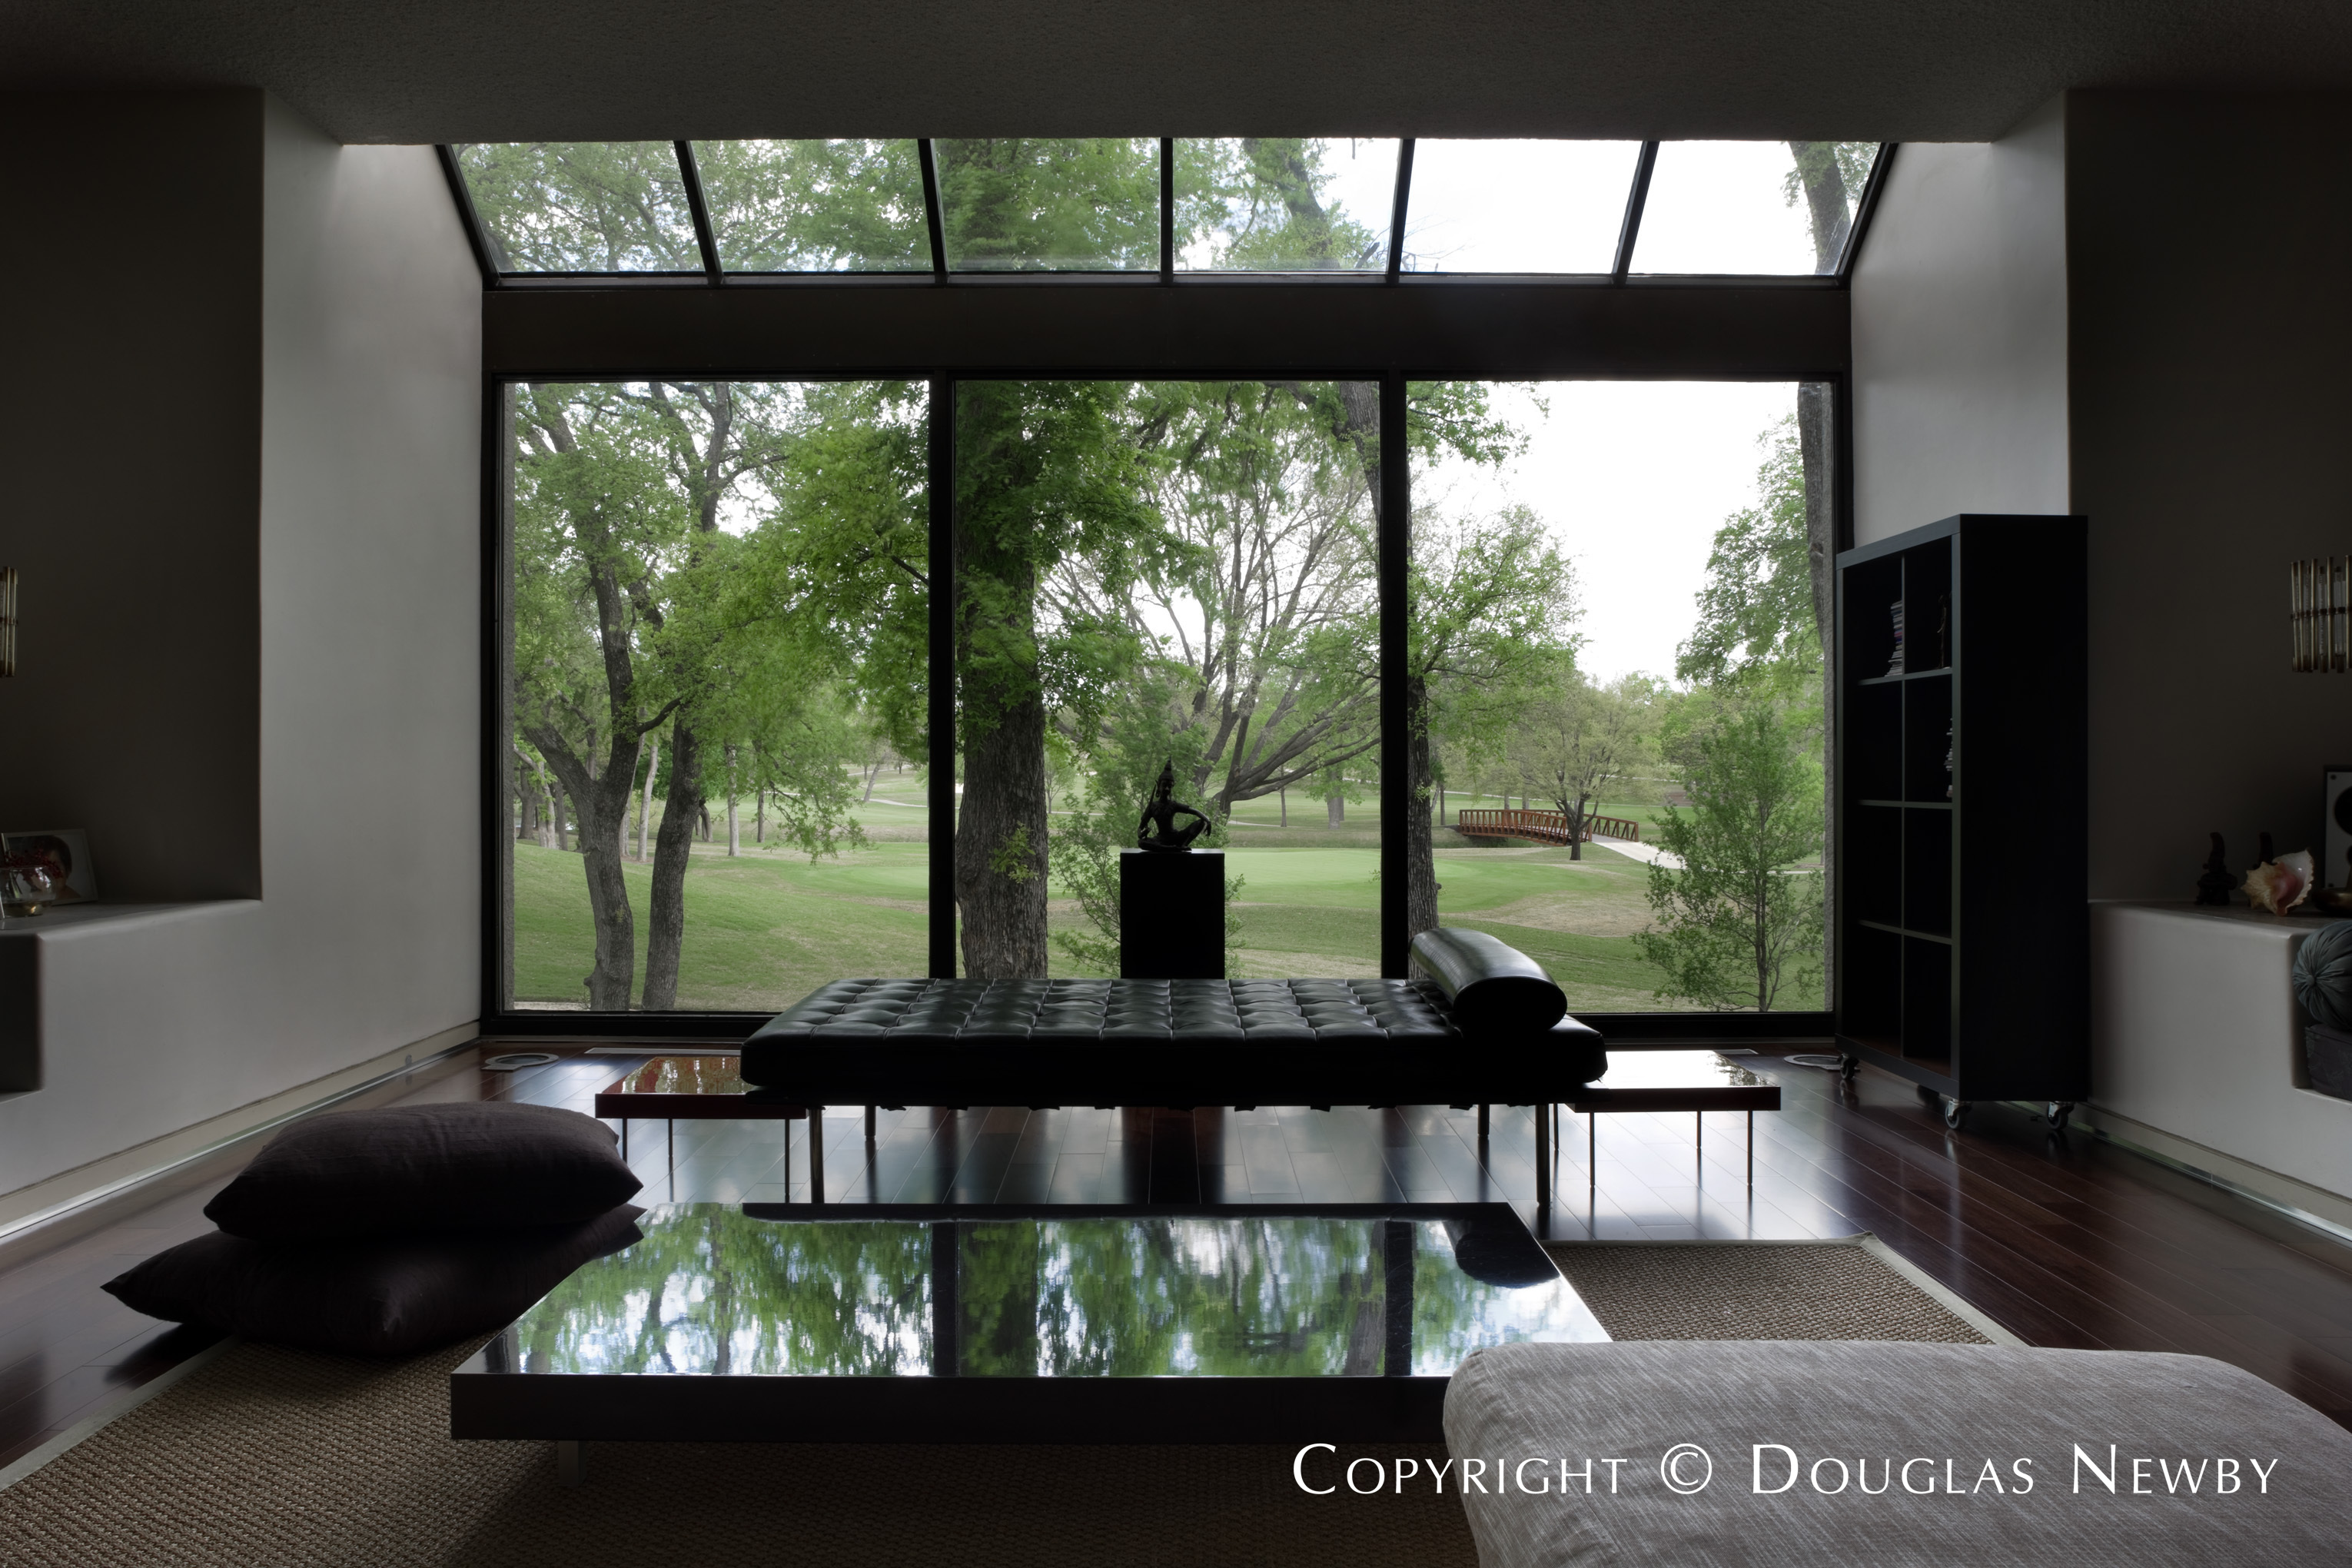 Bent Tree Modern Home sitting on 1.079 Acres